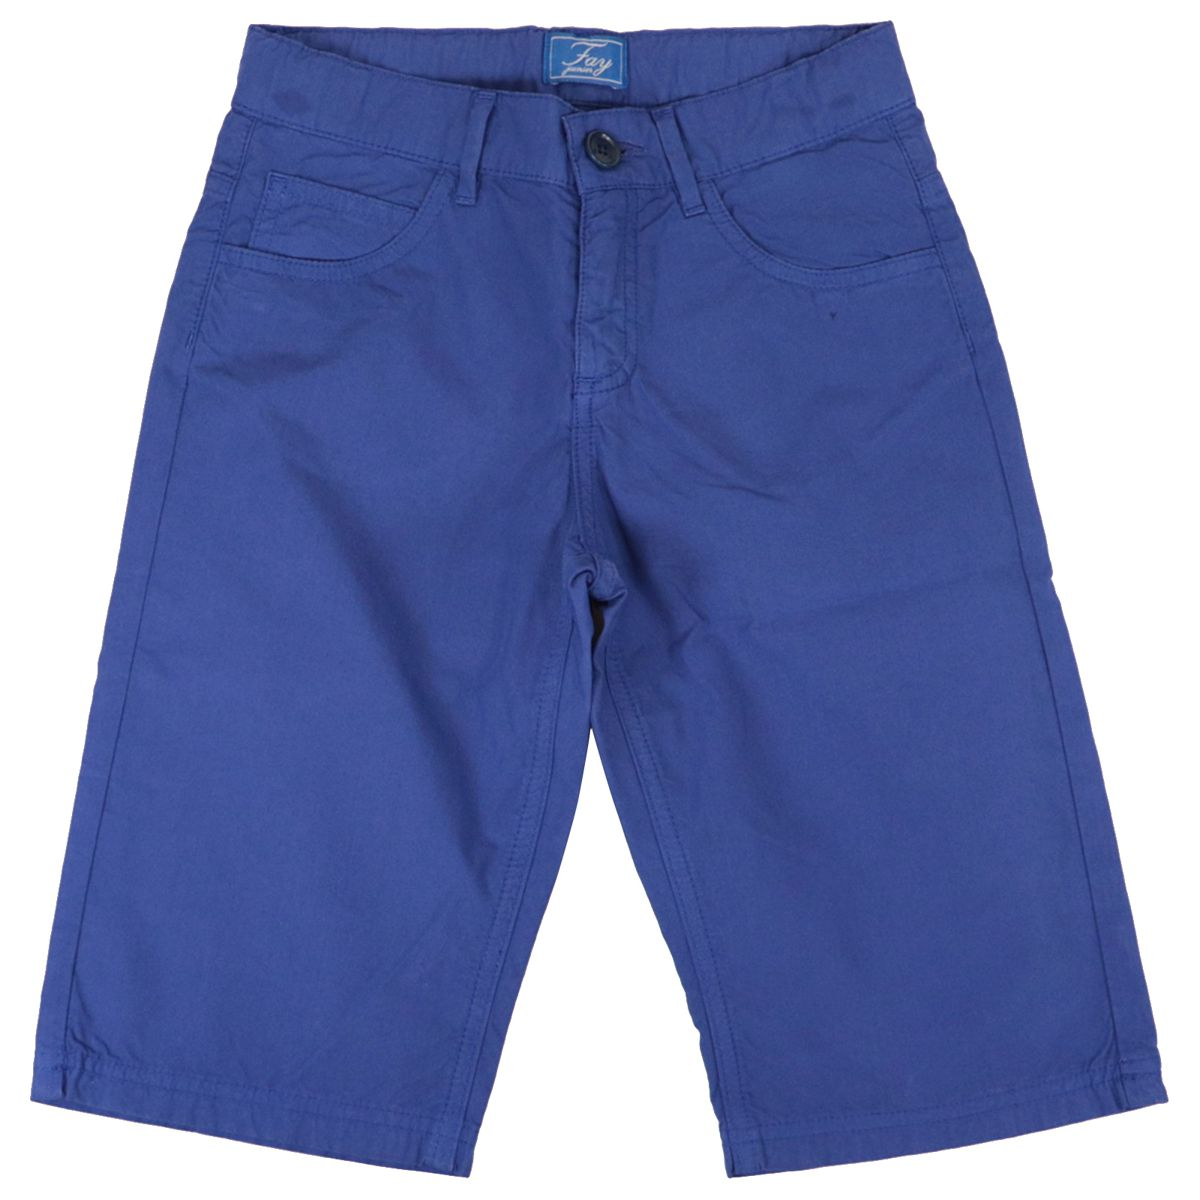 Classic cotton shorts with logo on the back Bluette Fay